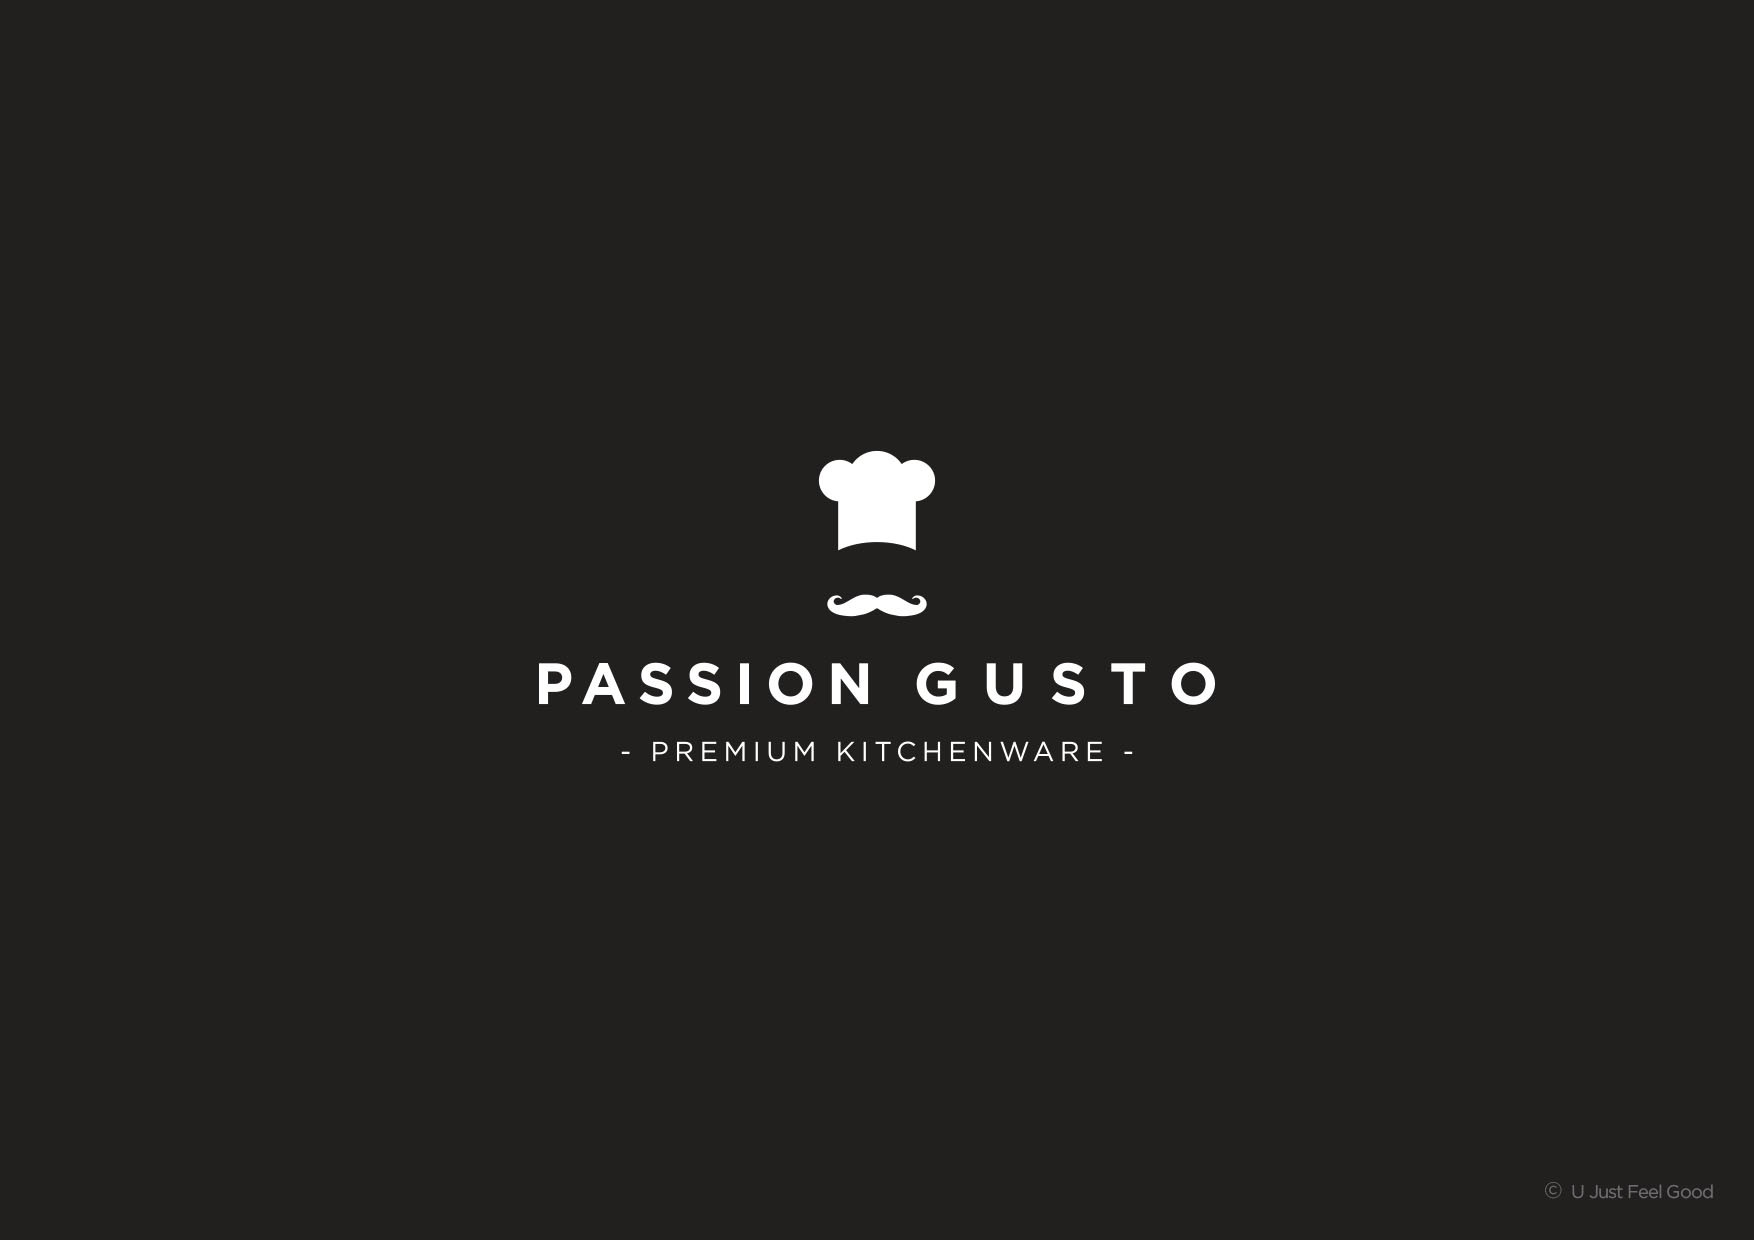 Passion Gusto | Kitchenware